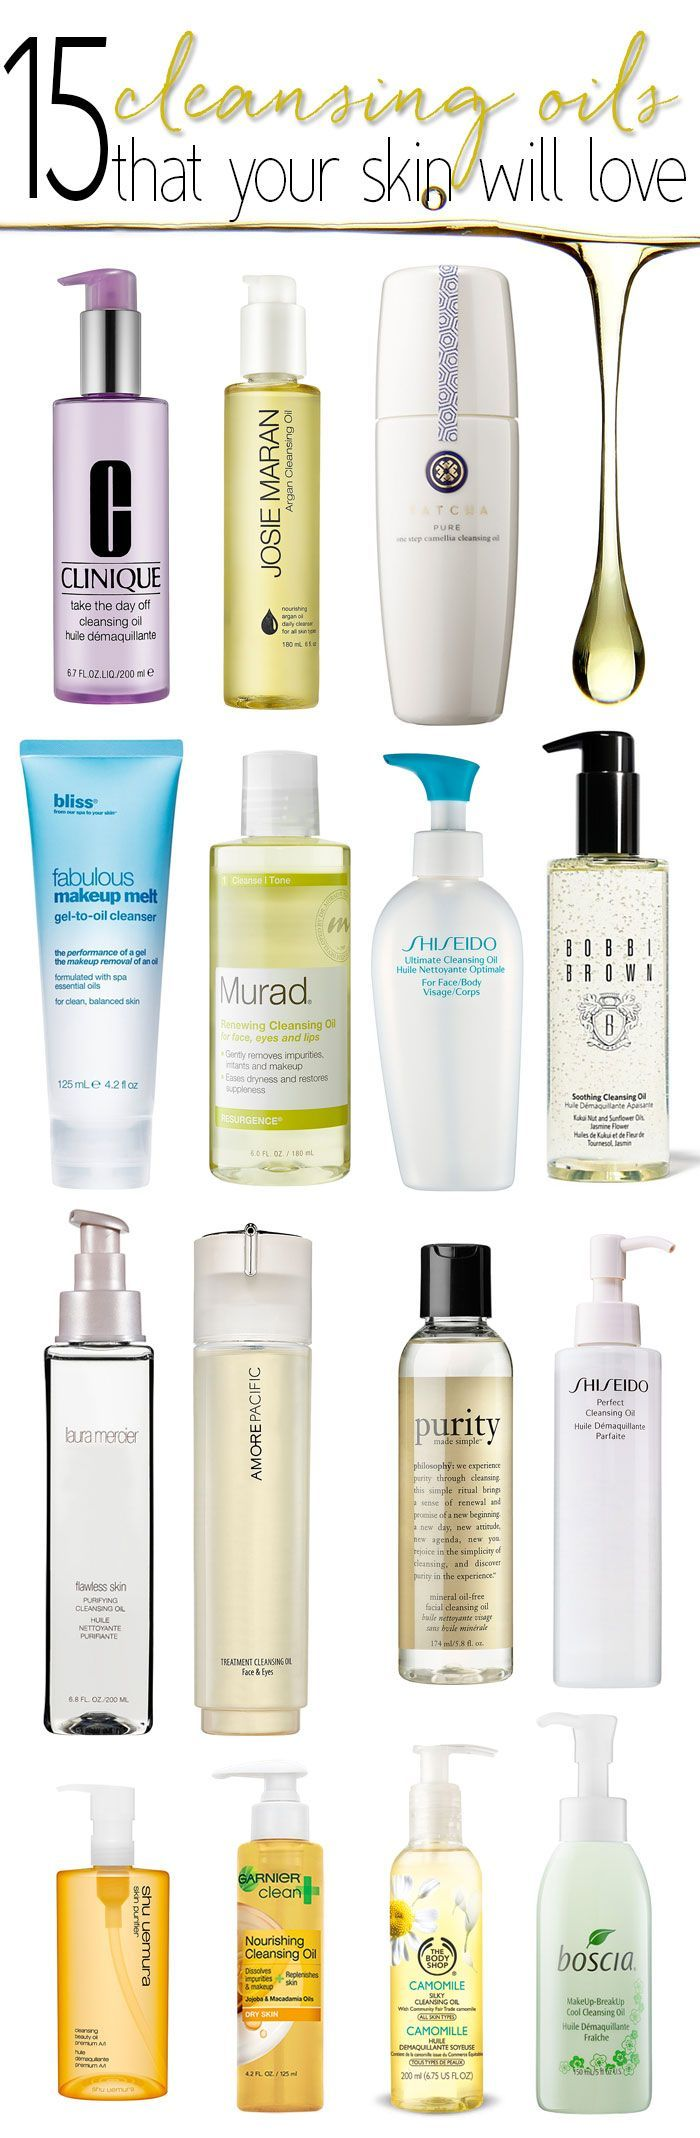 Cleansing Oils perfect for winter!  They easily remove even the most stubborn waterproof makeup but help my skin stay hydrated in the cold winter weather.15 Cleansing Oils perfect for winter!  They easily remove even the most stubborn waterproof makeup but help my skin stay hydrated in the cold winter weather.